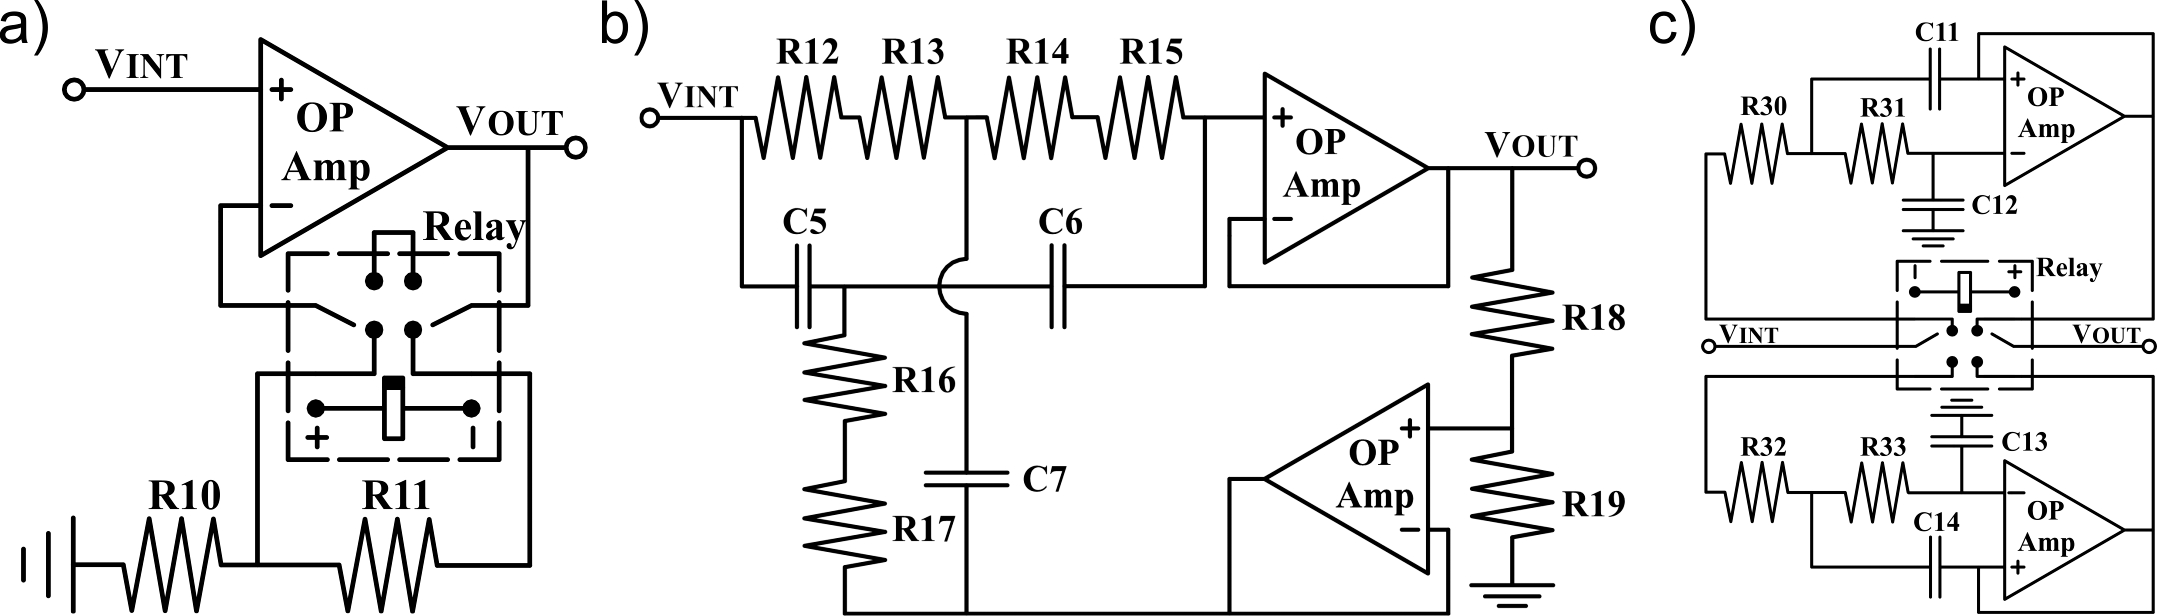 Design Of Analog Front End Circuit For Audio Frequency Active Operational Amplifier Notch Filter The Is Quite Diagram Twin T View Largedownload Slide